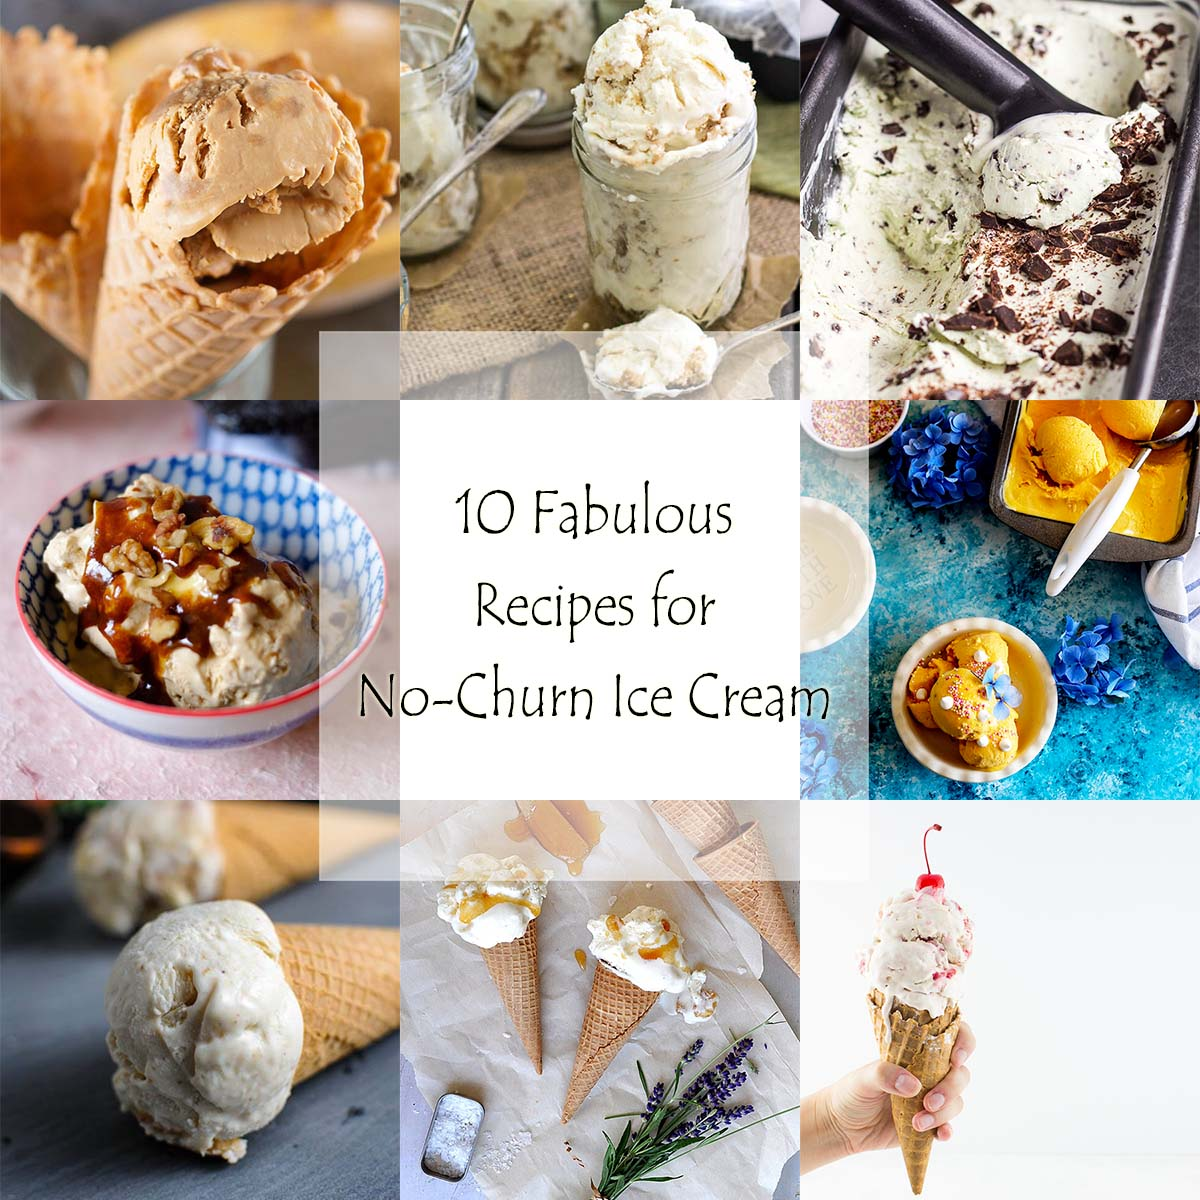 No ice cream machine? No problem! Here are 10 fabulous recipes for easy, no-churn ice cream that will have you making ice cream all summer long. | justalittlebitofbacon.com